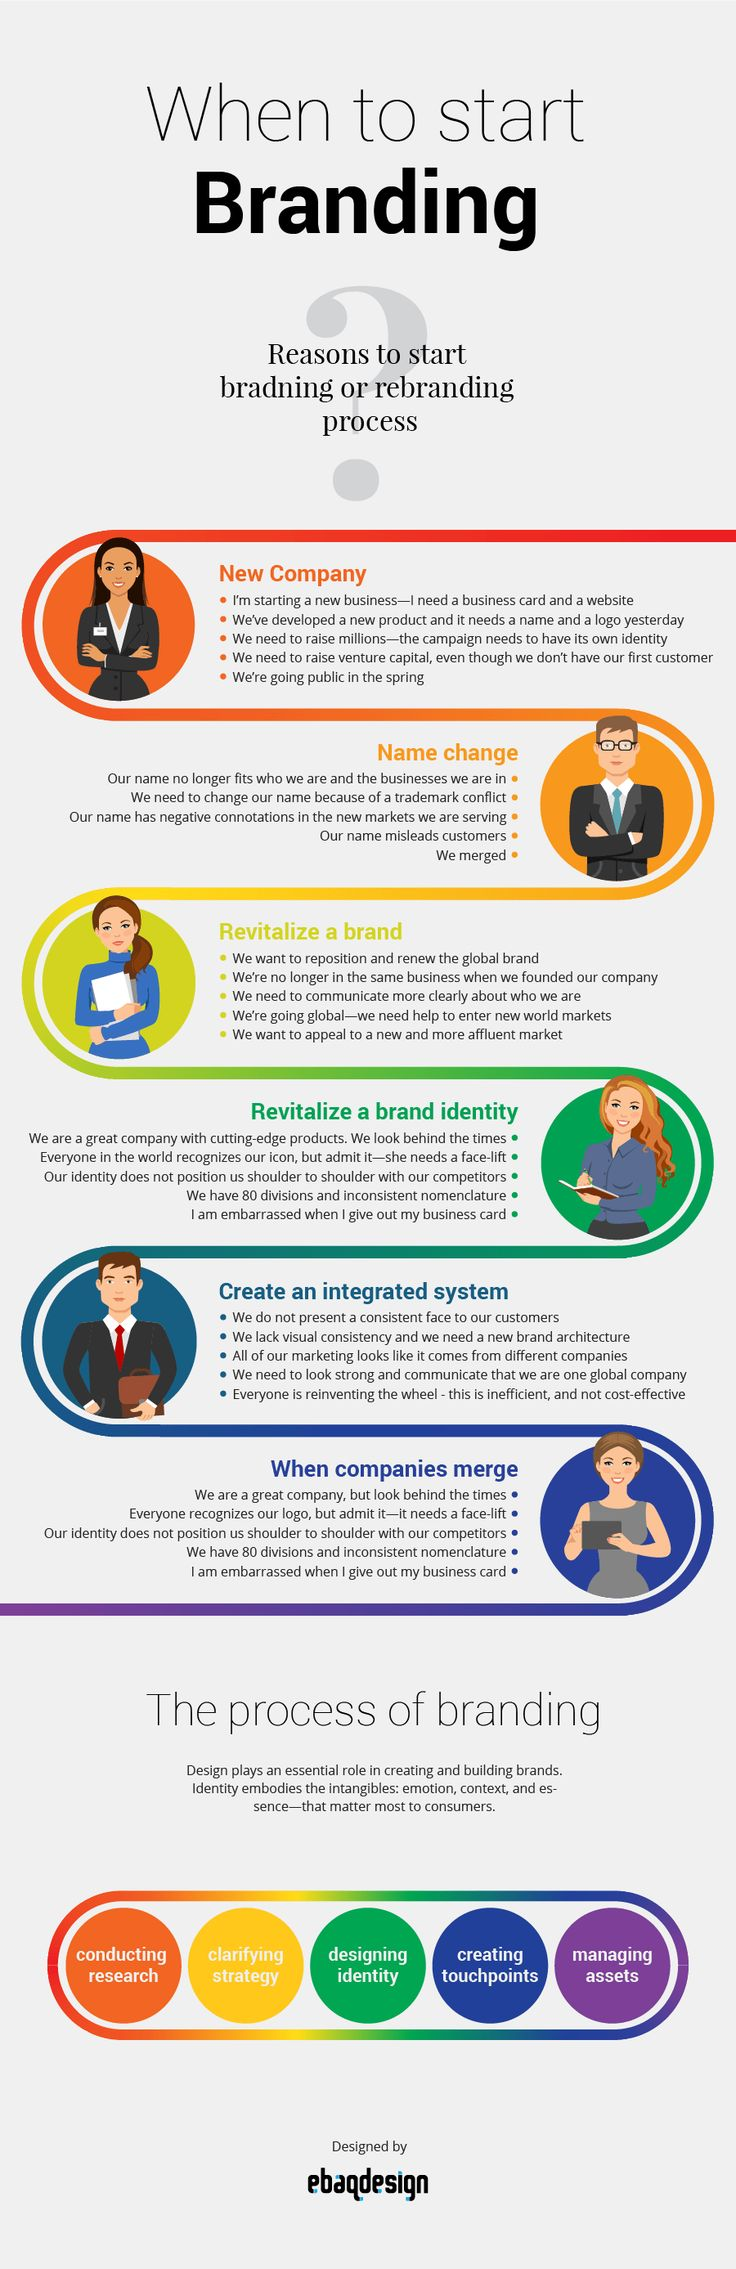 Discover what are the most common reasons to start #branding or #rebranding process in the #infographic below.